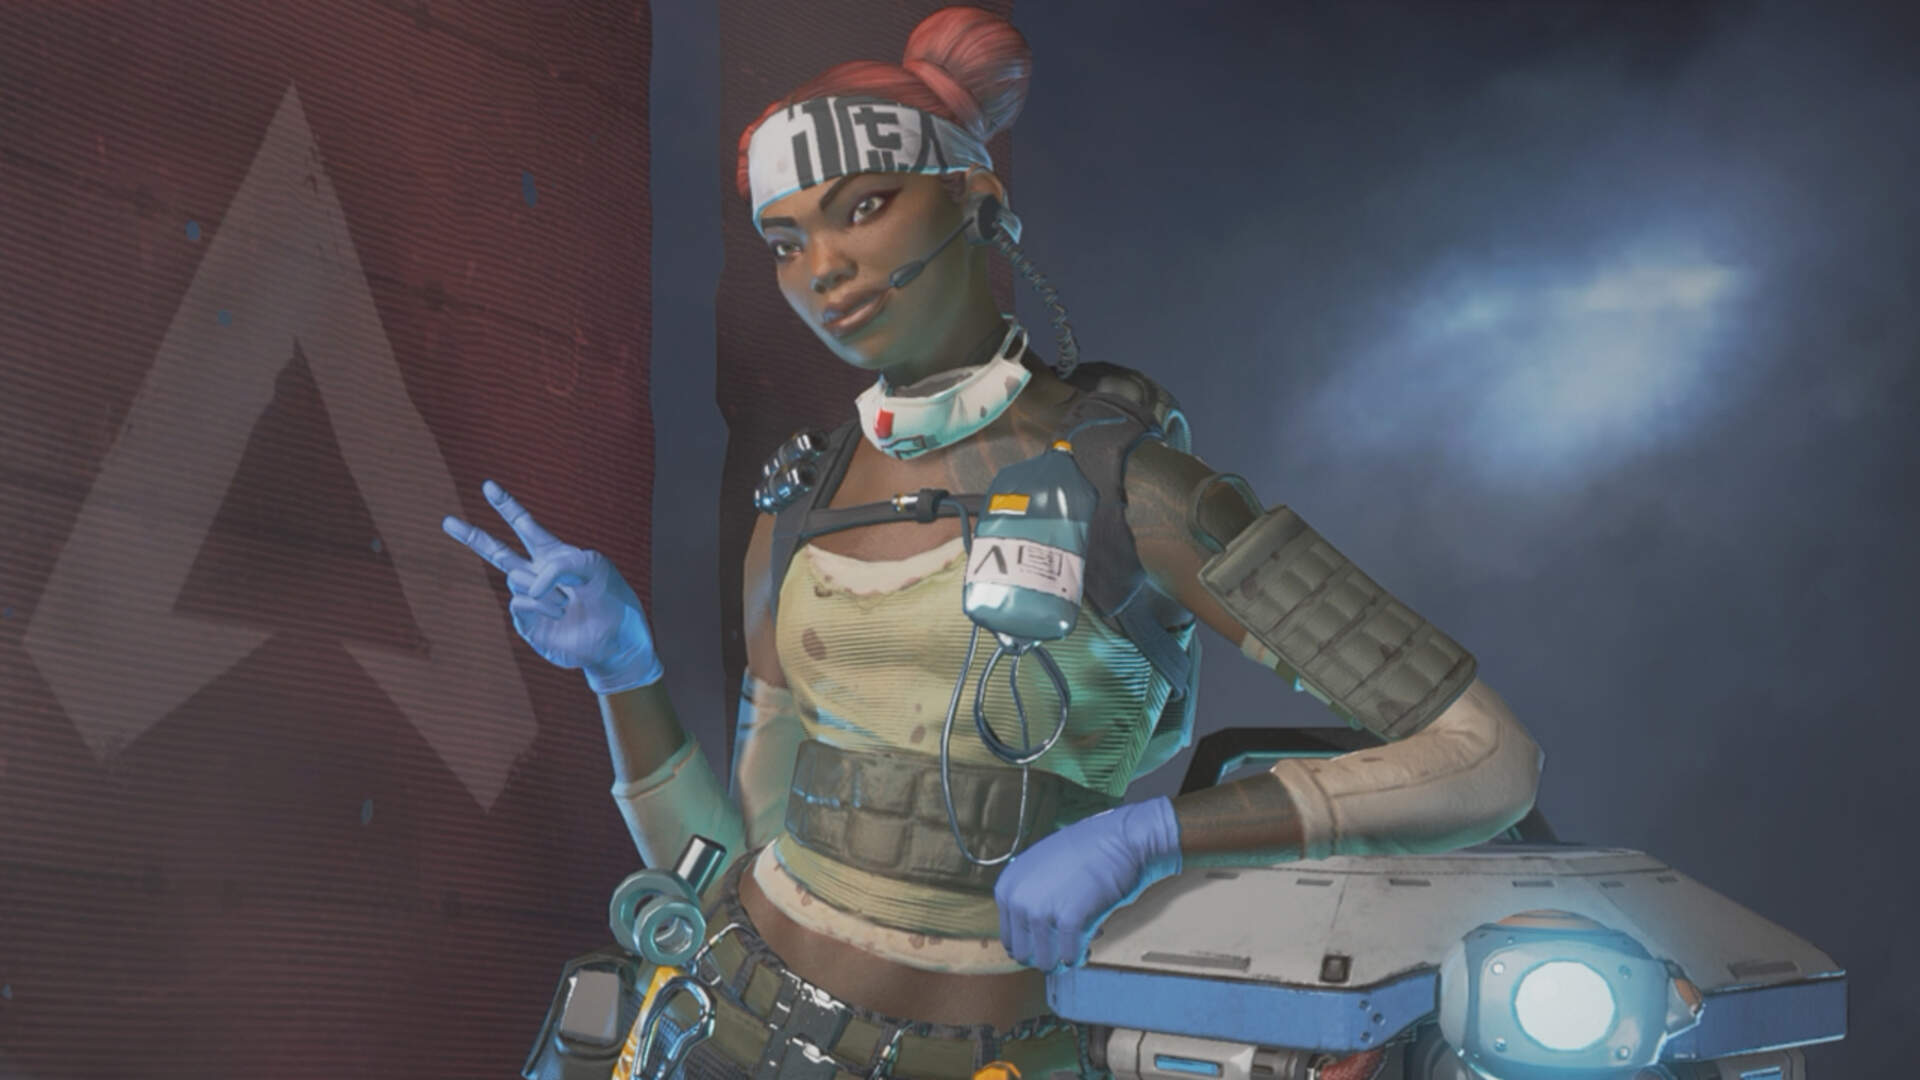 Apex Legends Lifeline - Lore, Tips, Abilities, Legendary Skins, How to Win With Lifeline